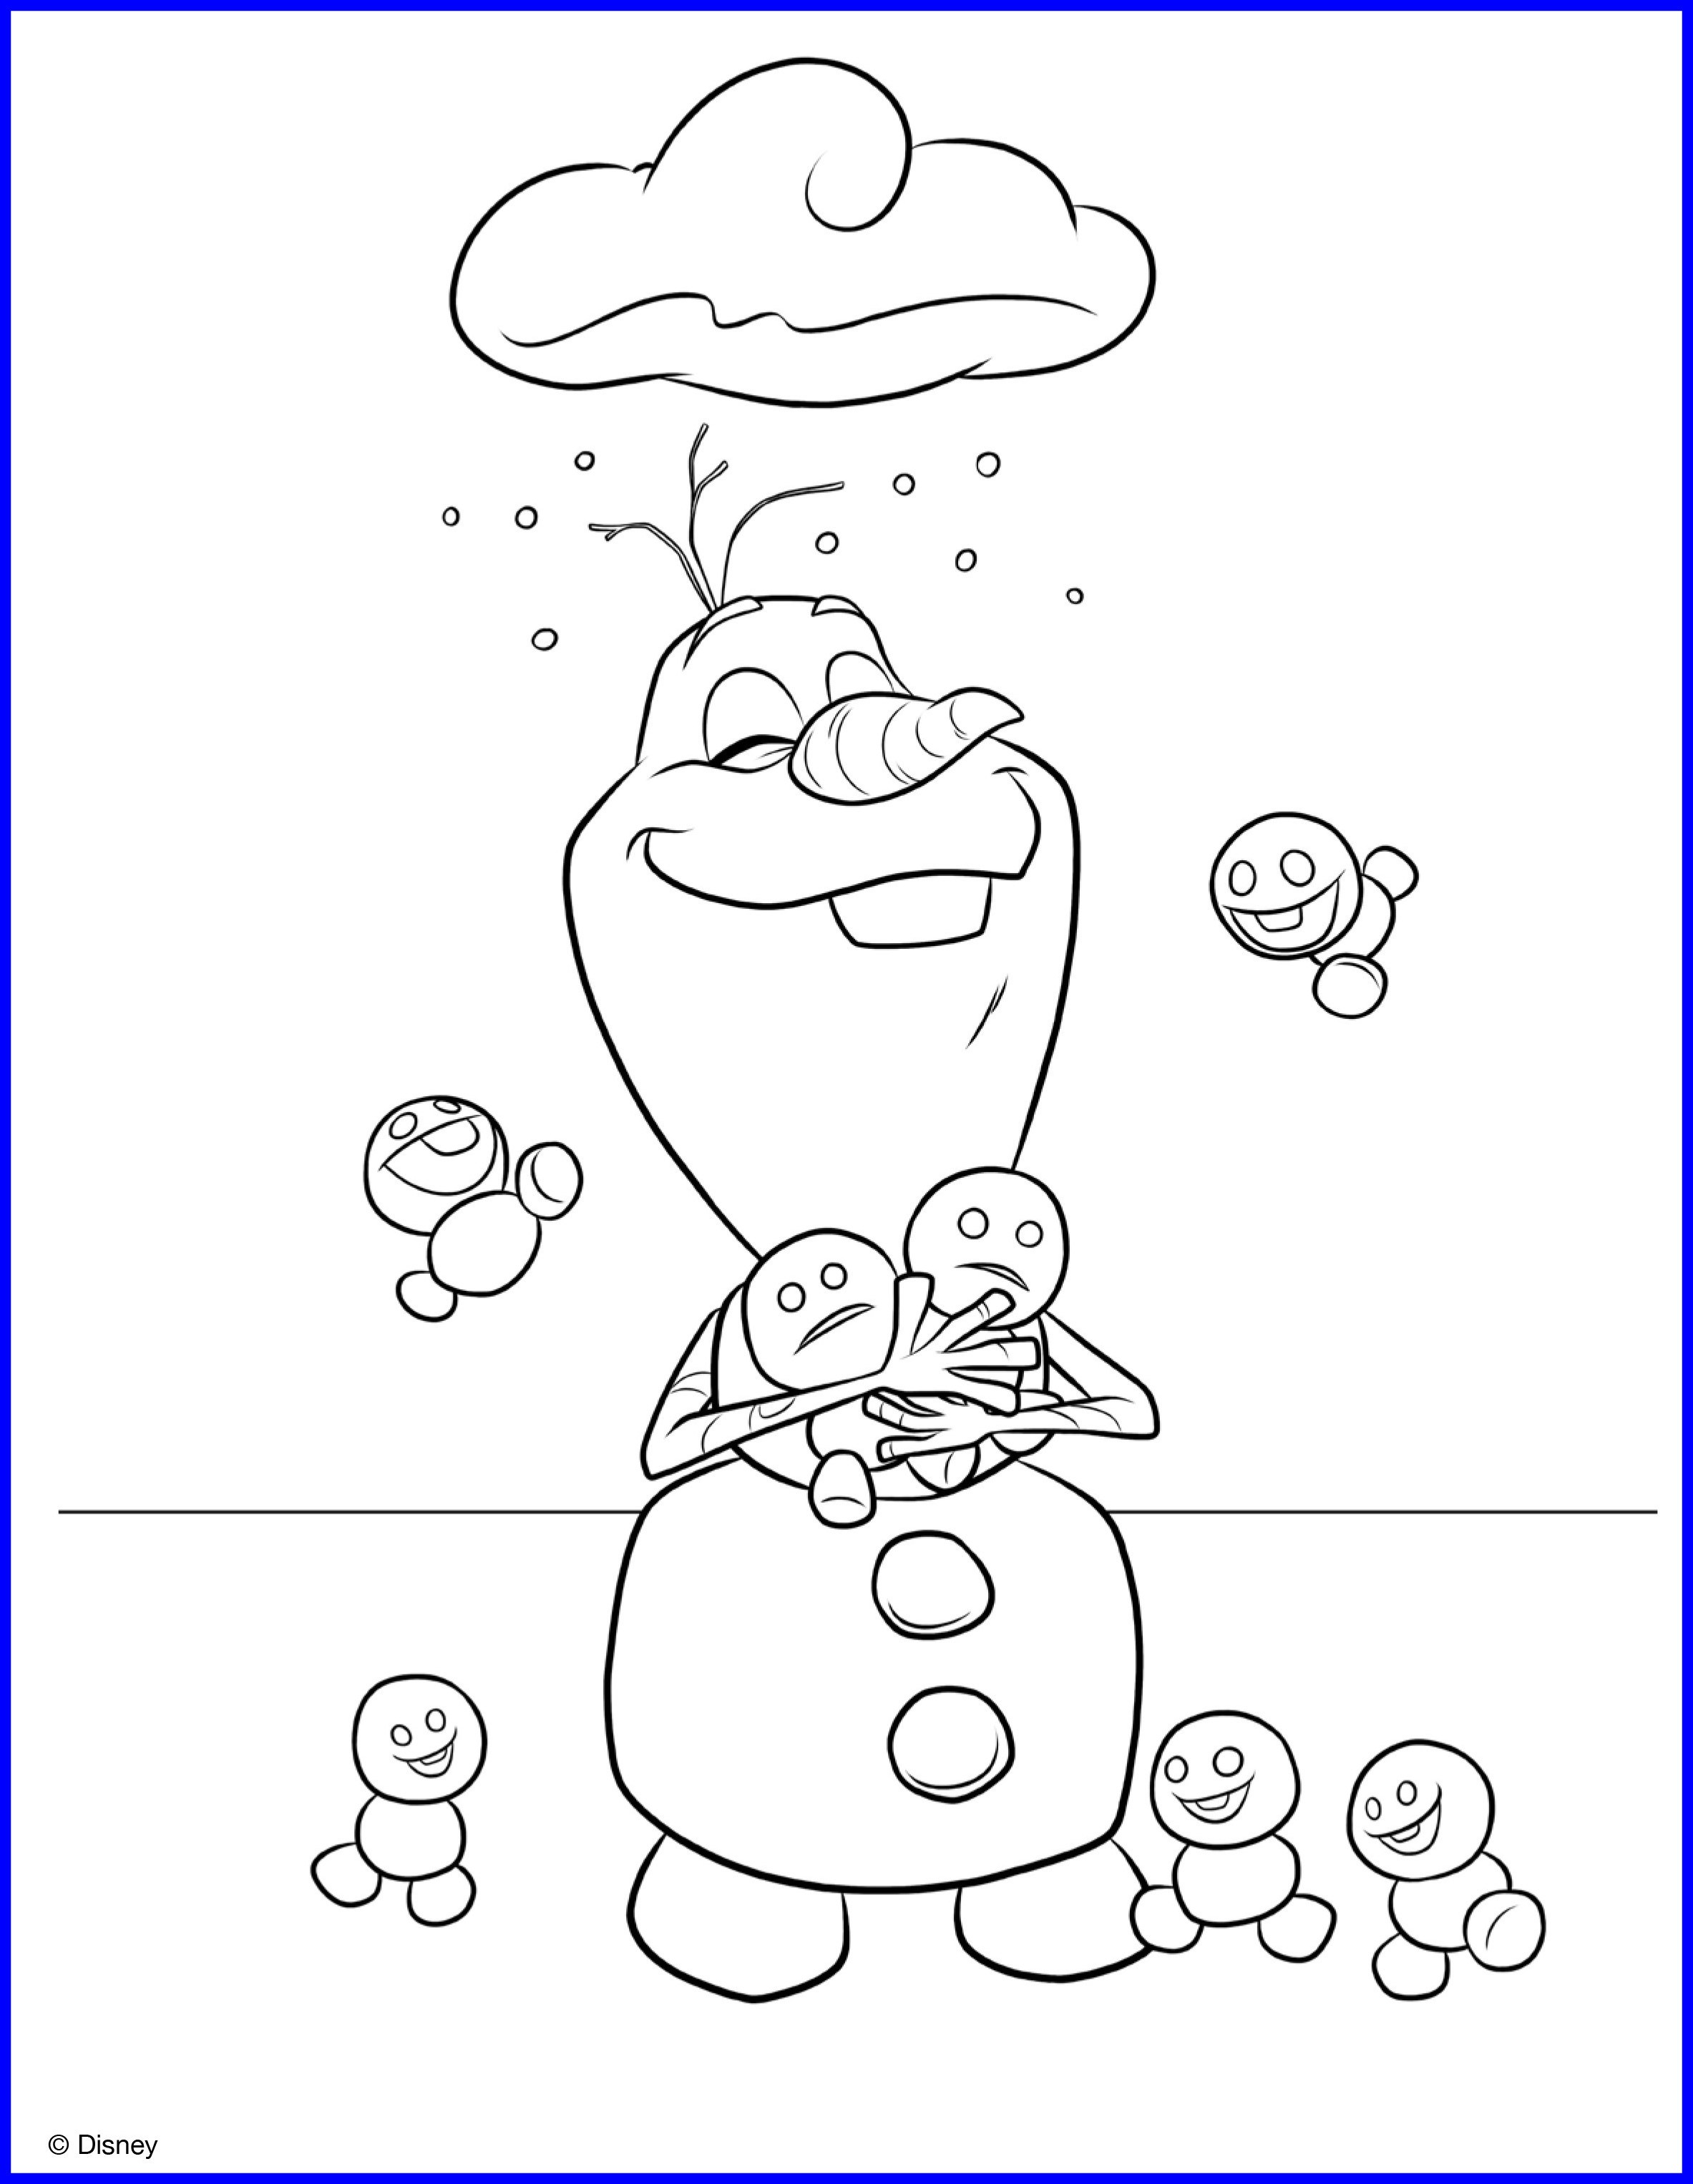 Olaf Printable Coloring Pages at GetDrawings.com | Free for ...